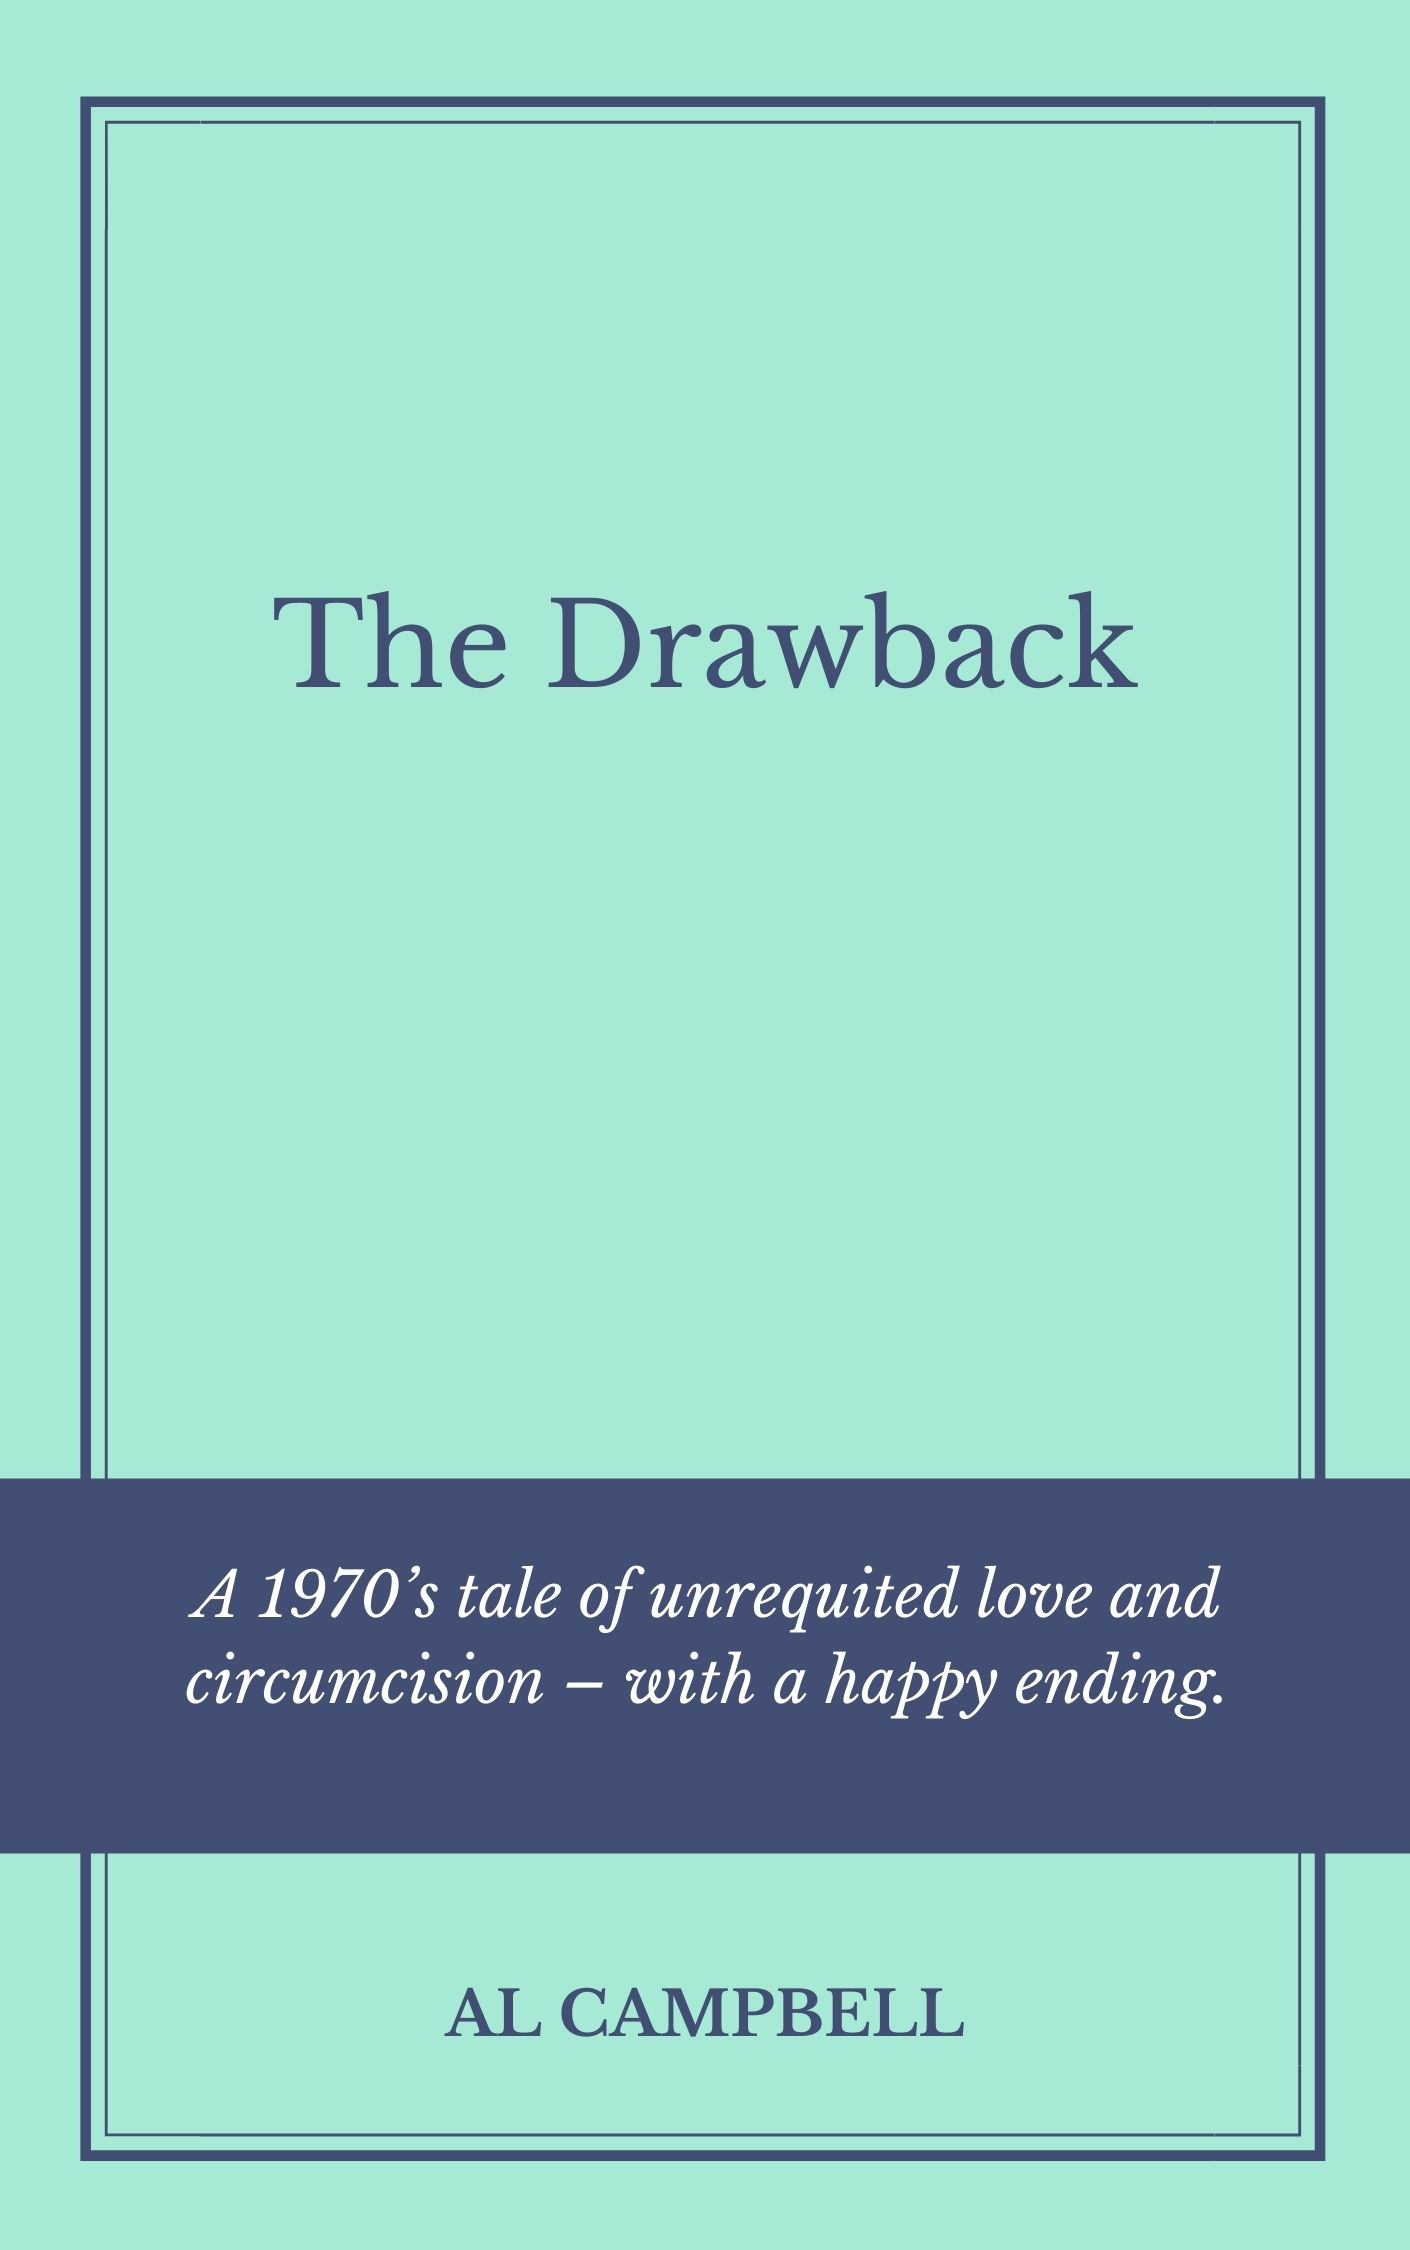 The Drawback - By Al Campbell